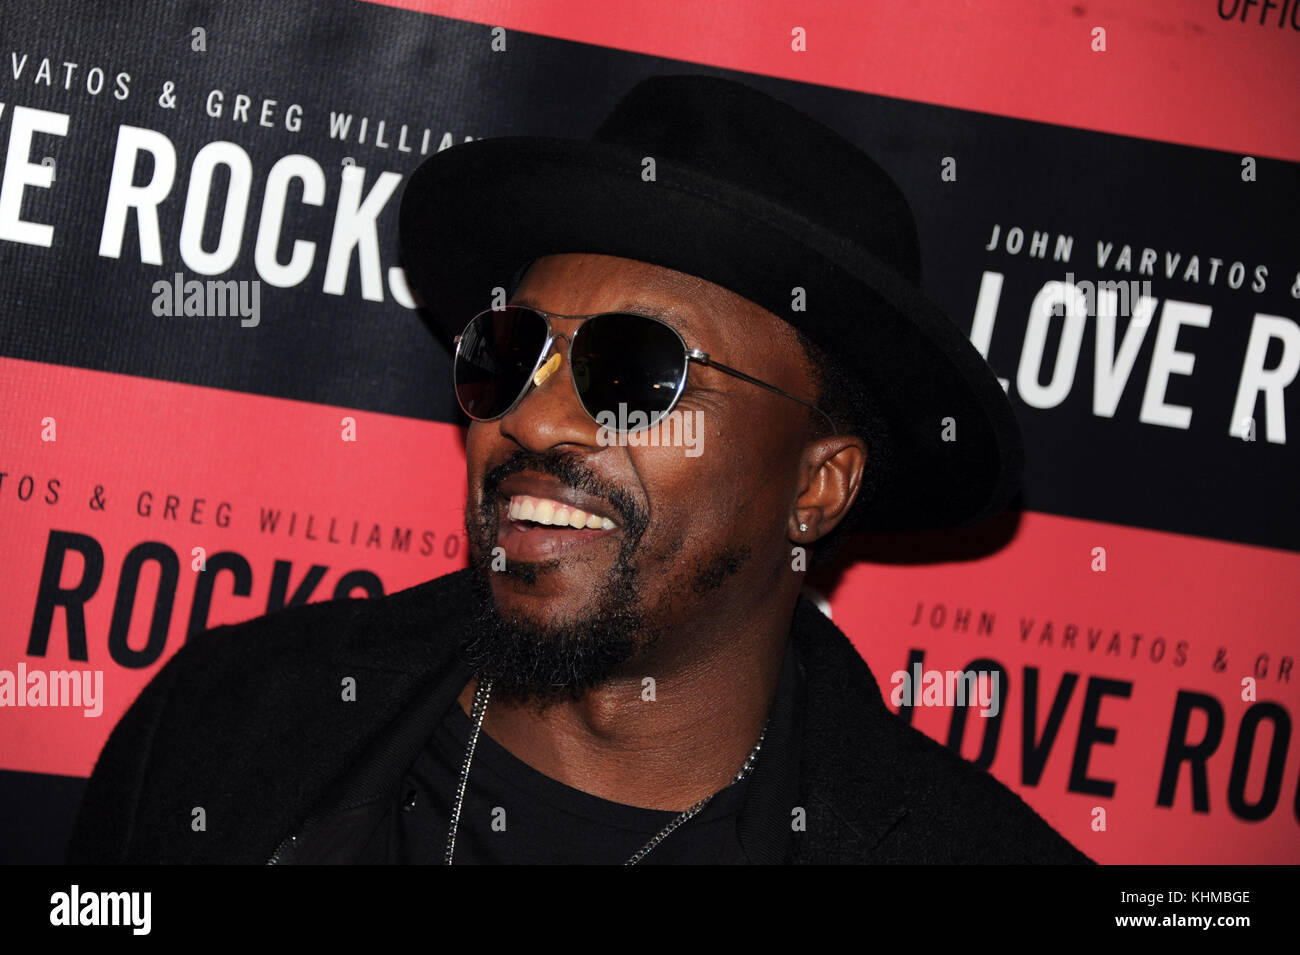 Anthony Hamilton - Struggle No More MP3 Download and Lyrics